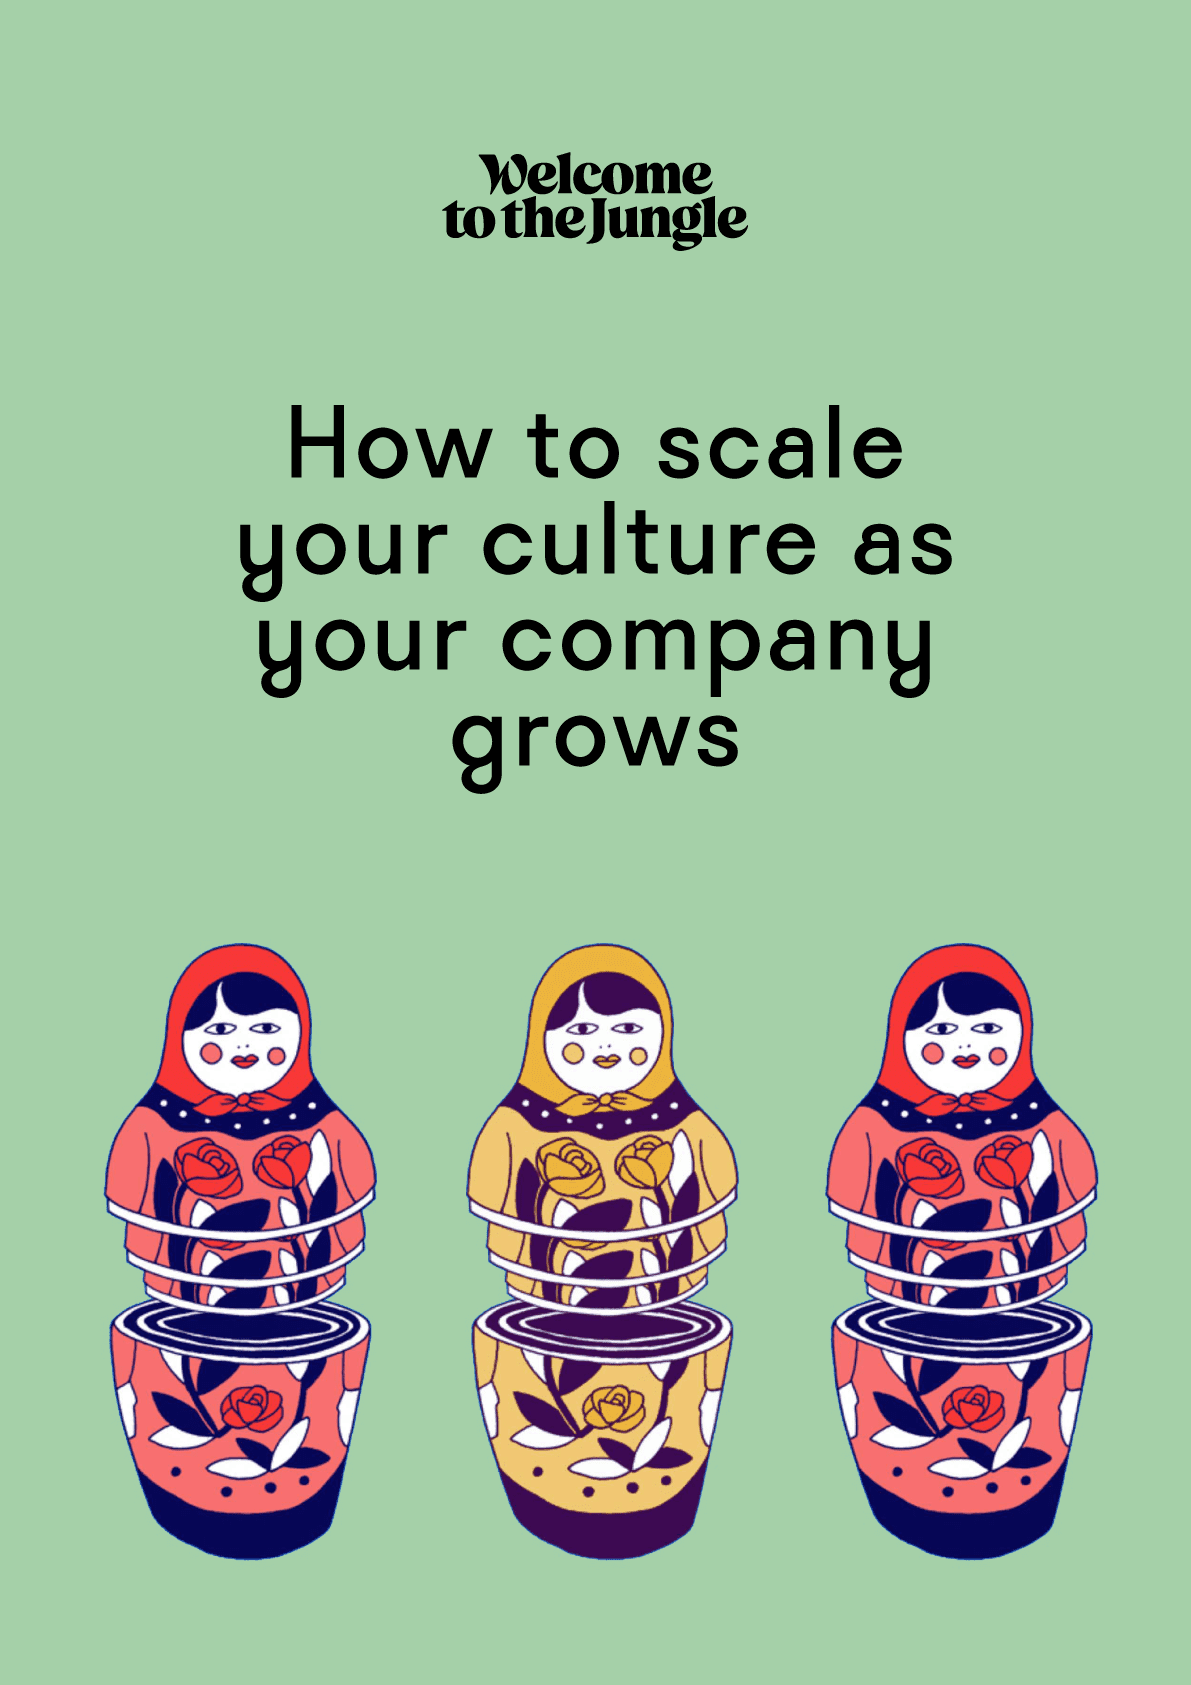 How to scale your culture as your company grows